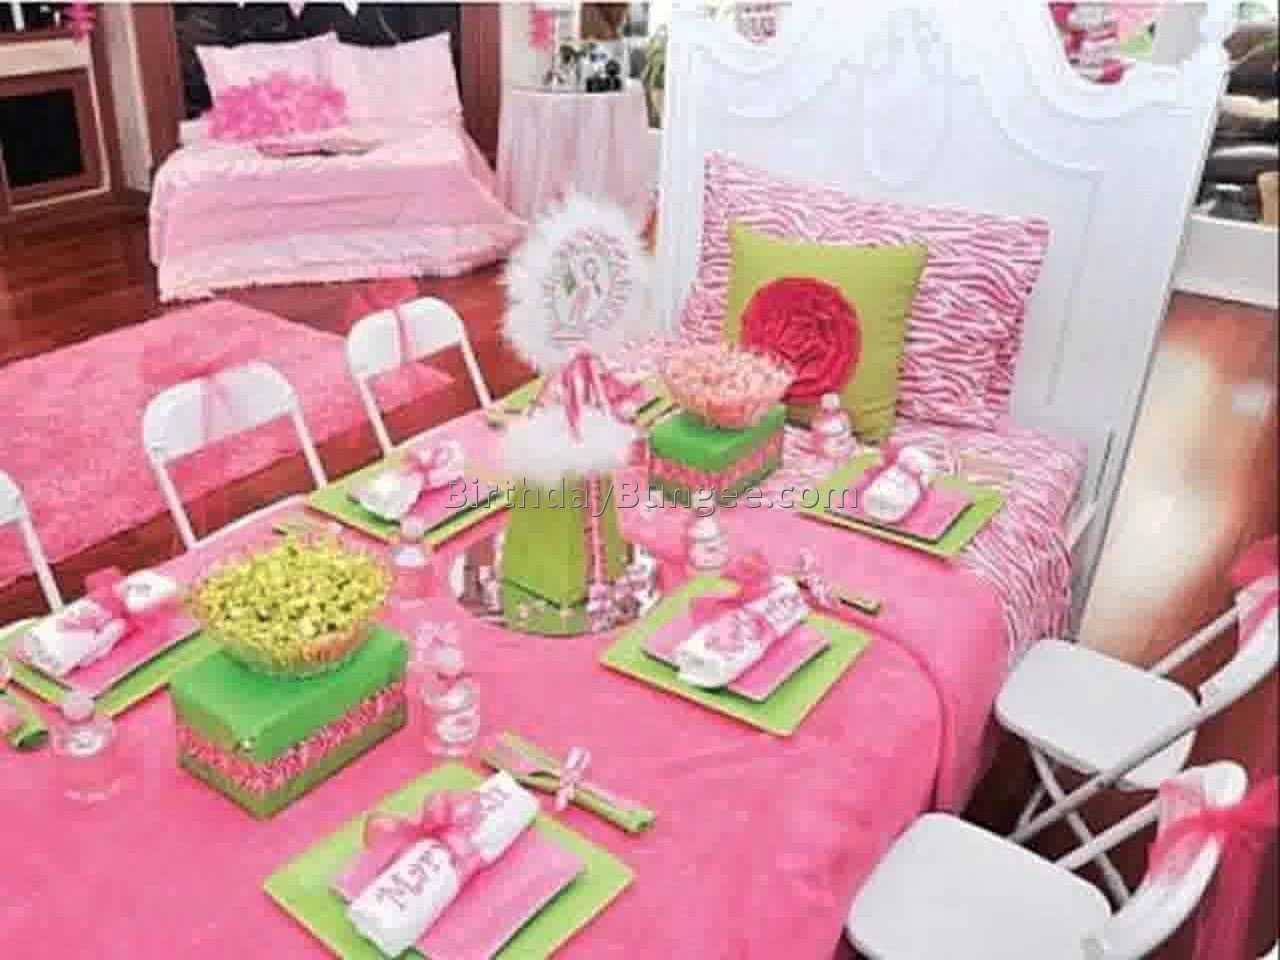 10 Gorgeous 6 Year Old Girl Birthday Party Ideas girl birthday party ideas for year olds home design ideas 2020